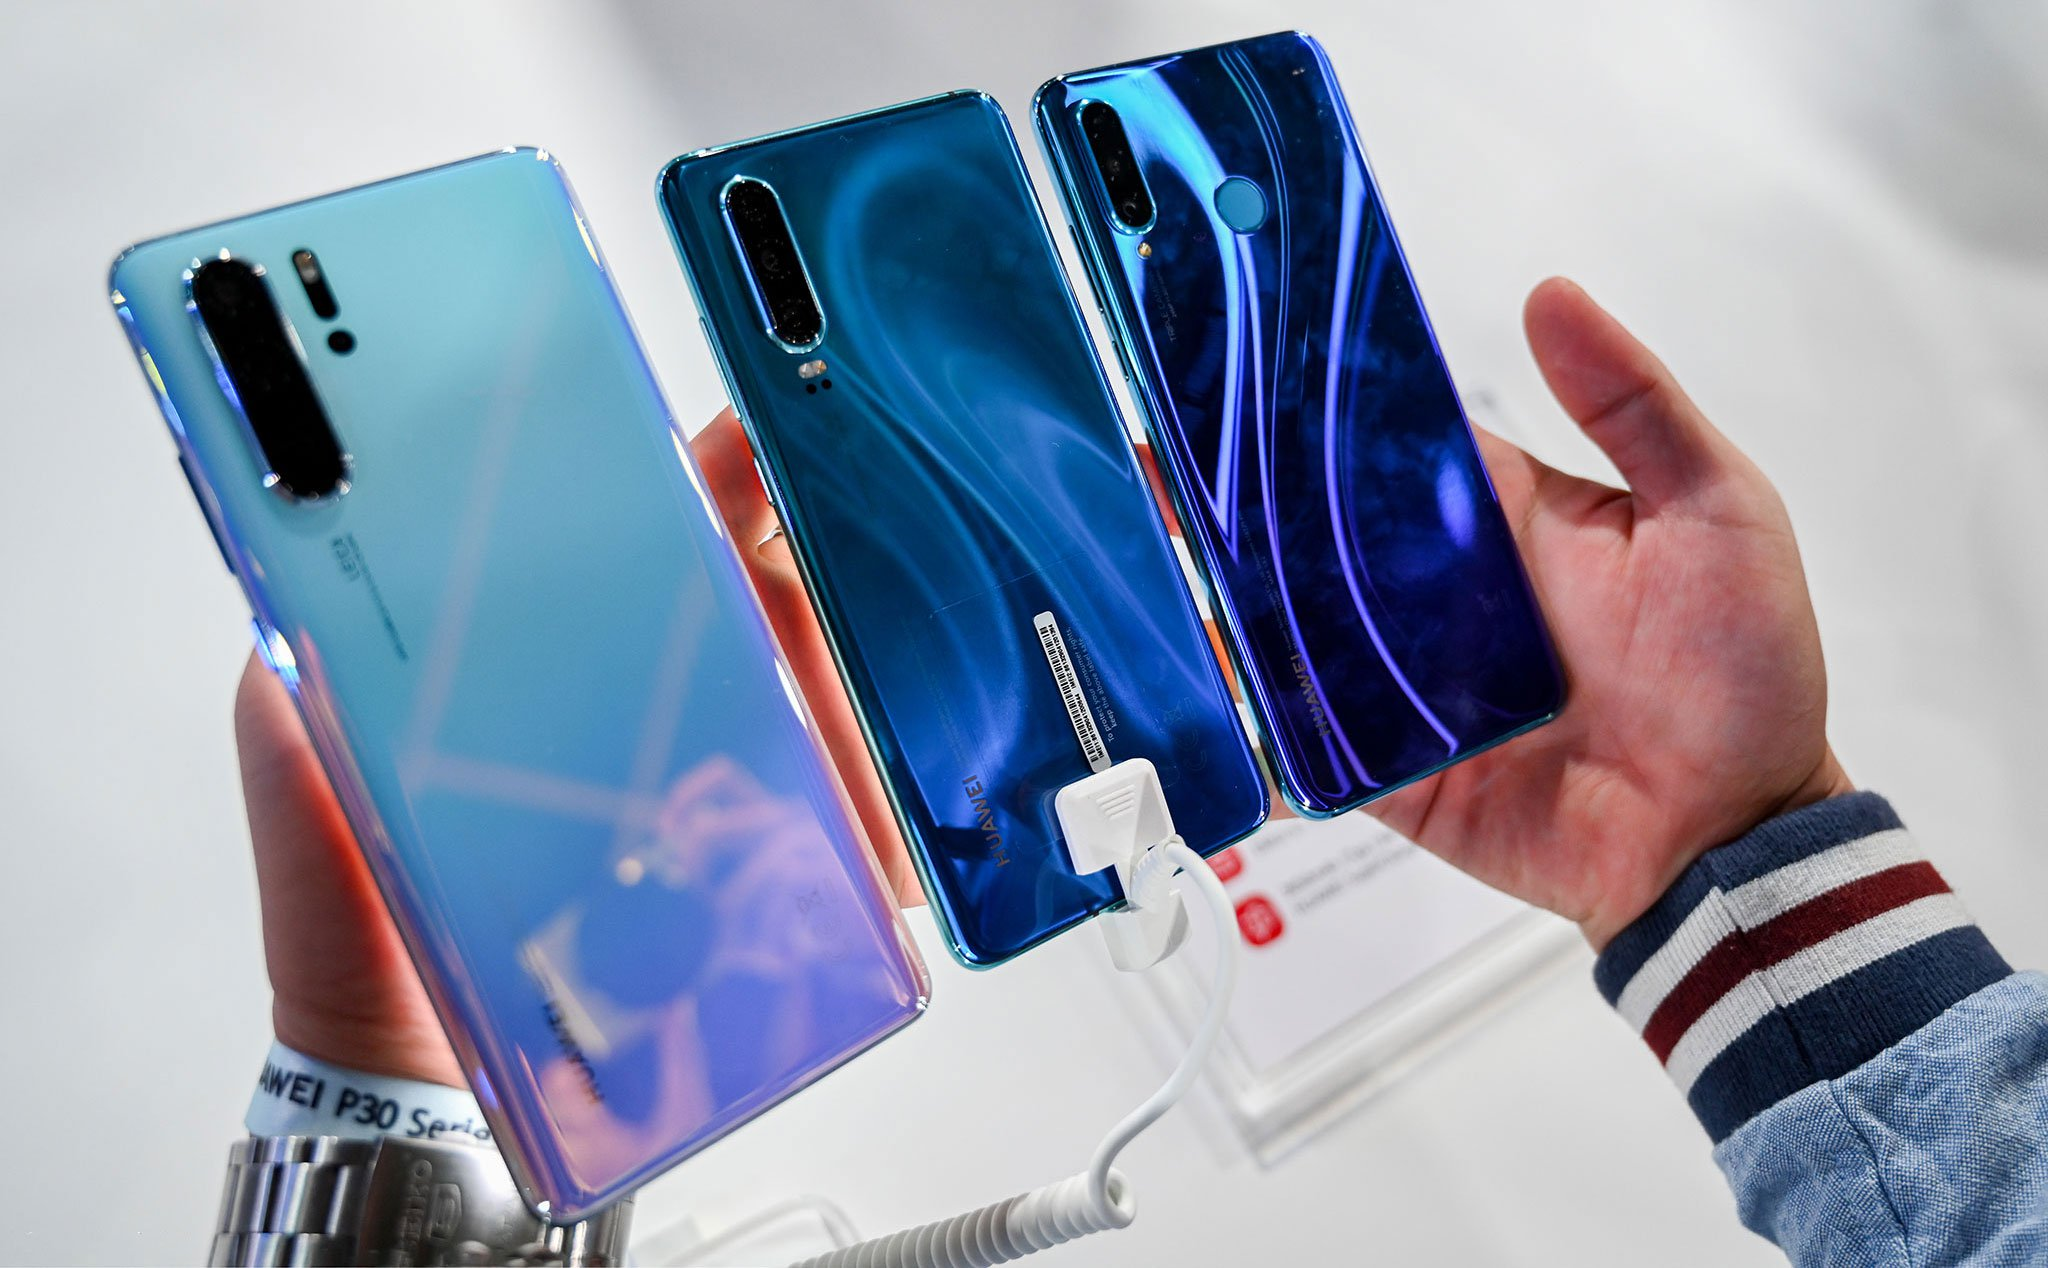 Huawei announced that it will update 17 smartphones to Android Q, most of which are new